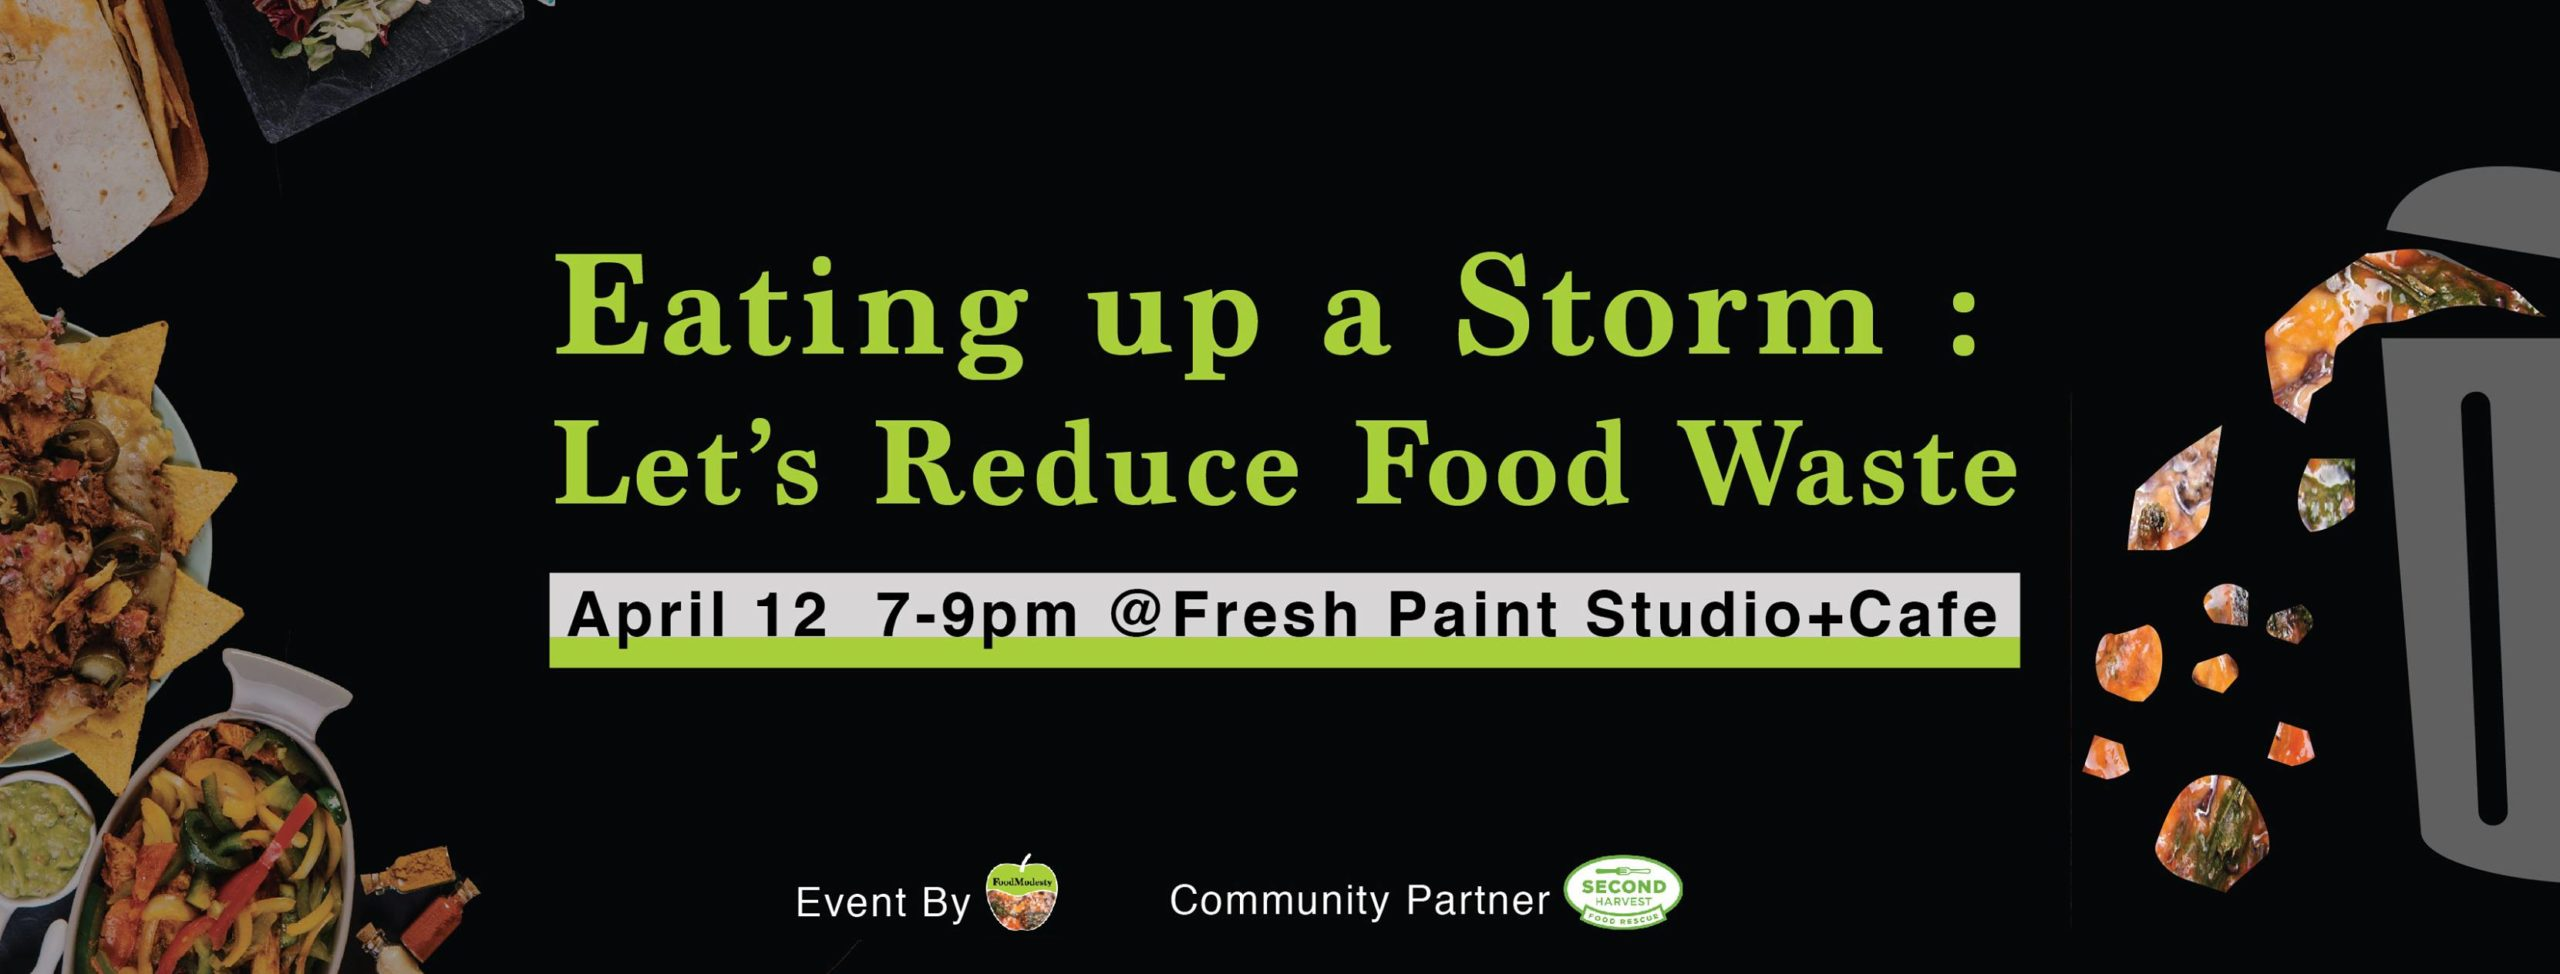 Food Modesty - Eating Up a Storm - Let's Reduce Food Waste Event